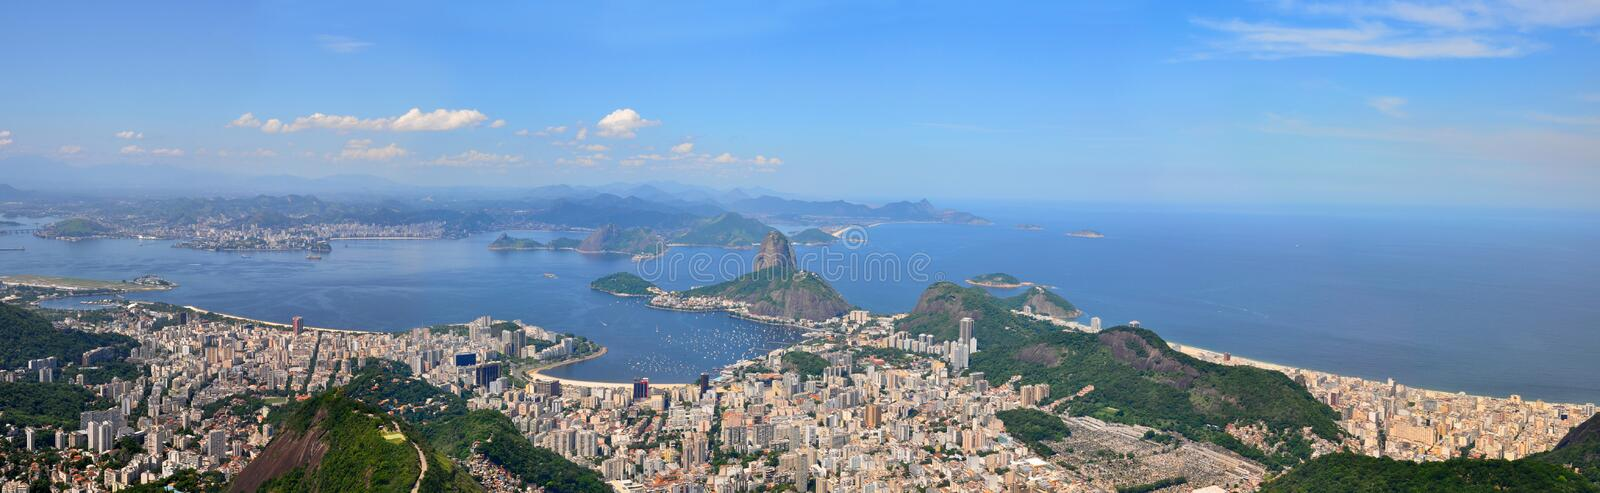 Rio de Janeiro, Brazil. Suggar Loaf viewed from Corcovado. stock image